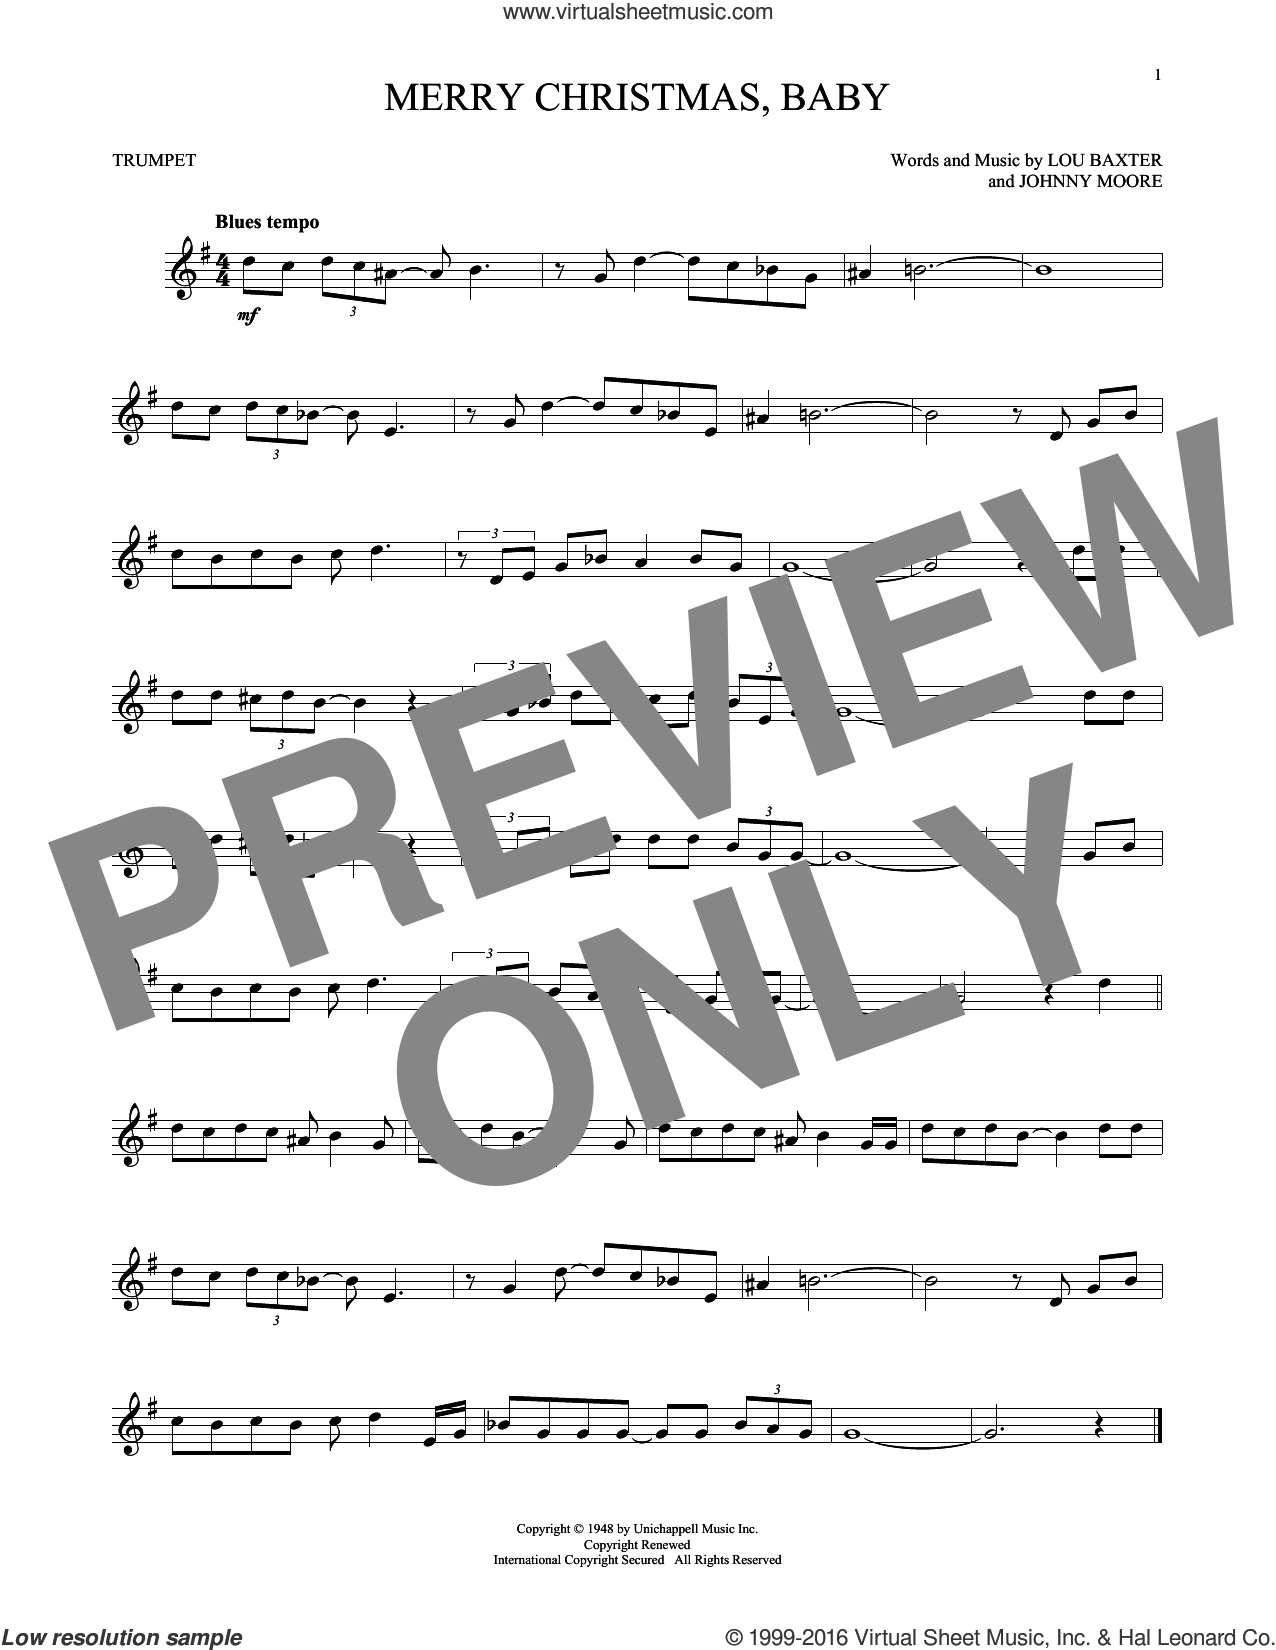 Merry Christmas, Baby sheet music for trumpet solo by Elvis Presley, Johnny Moore and Lou Baxter, intermediate skill level